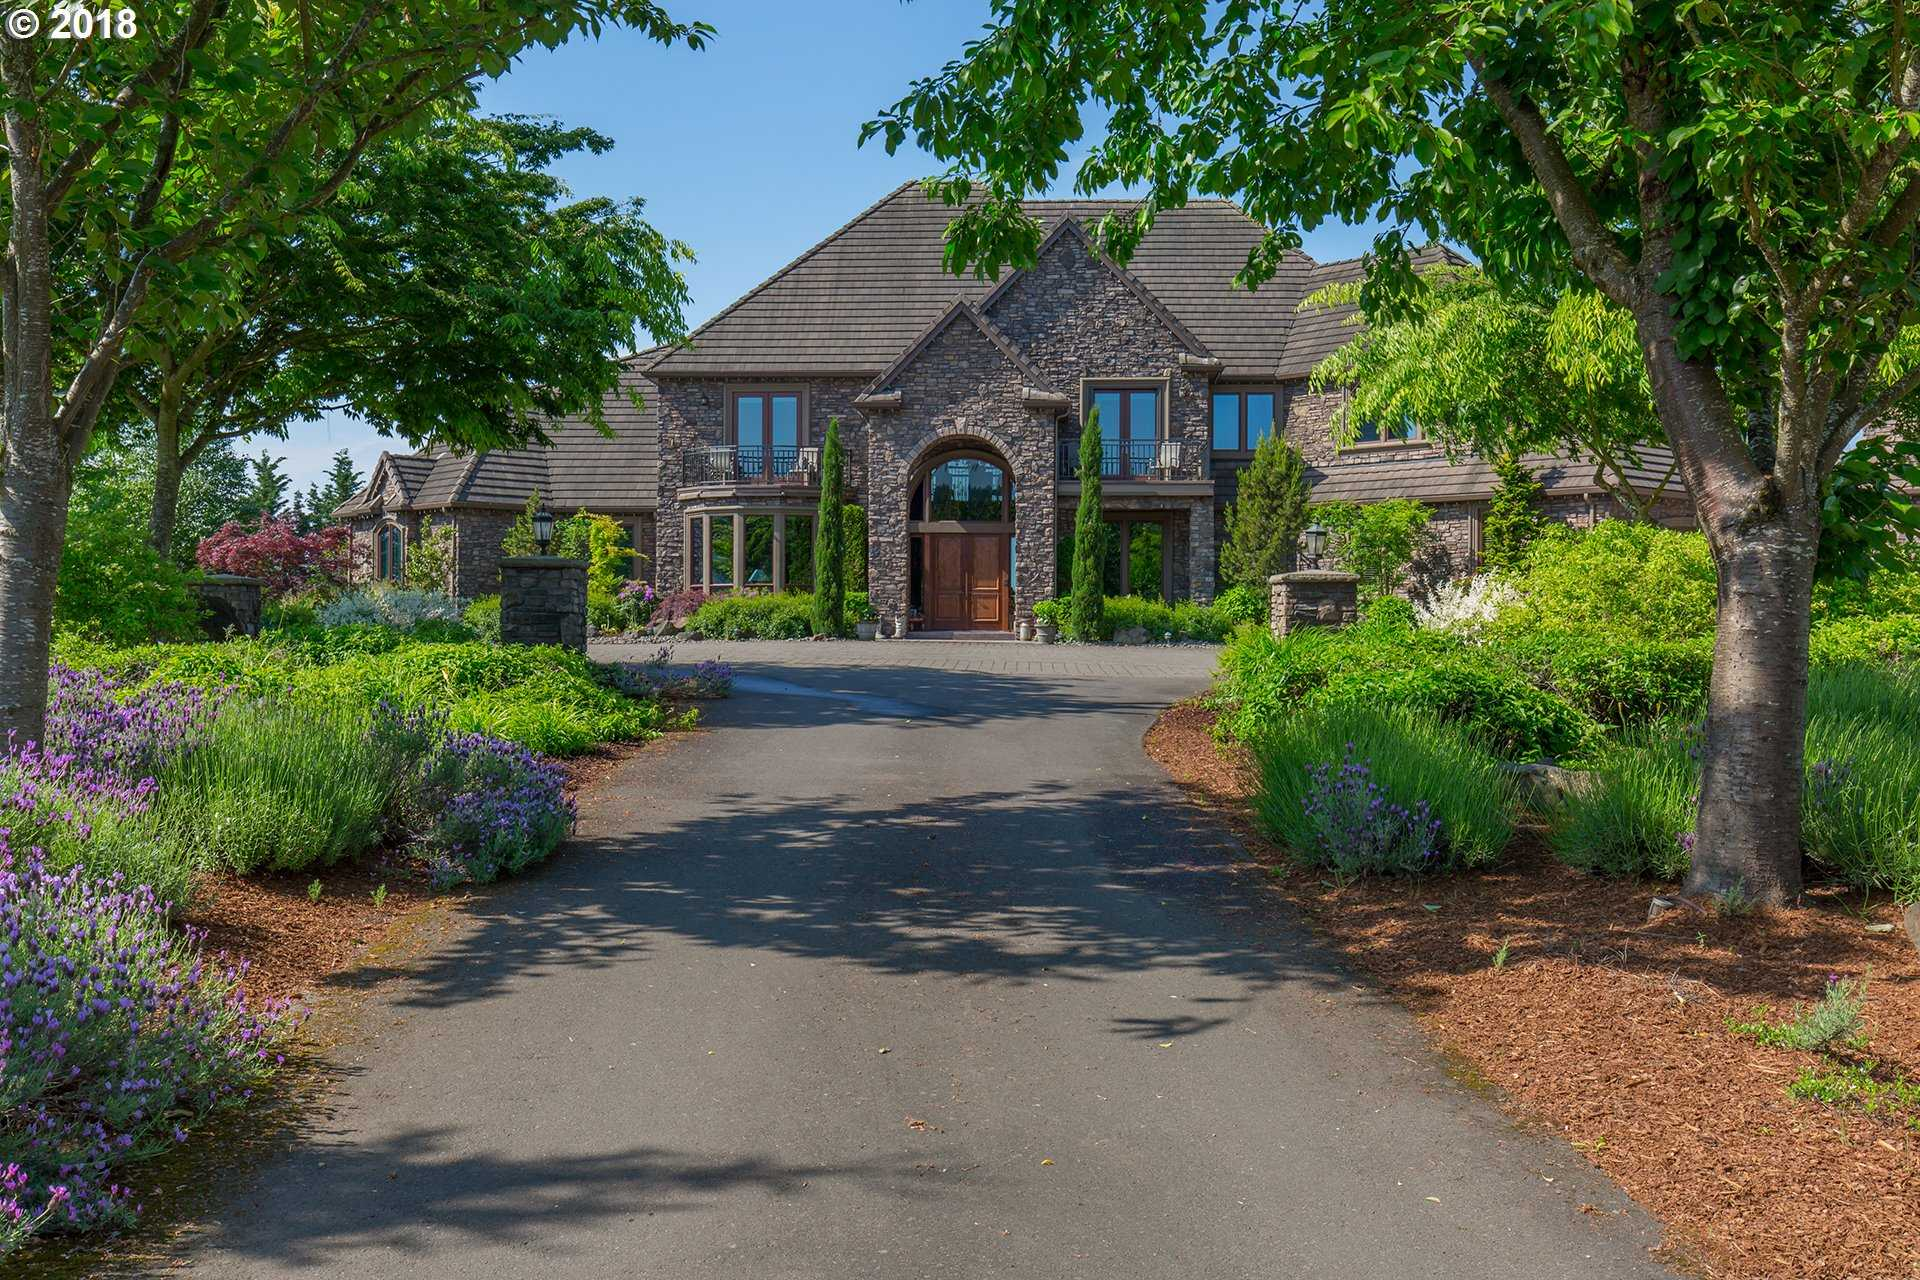 $2,975,000 - 7Br/8Ba -  for Sale in West Linn